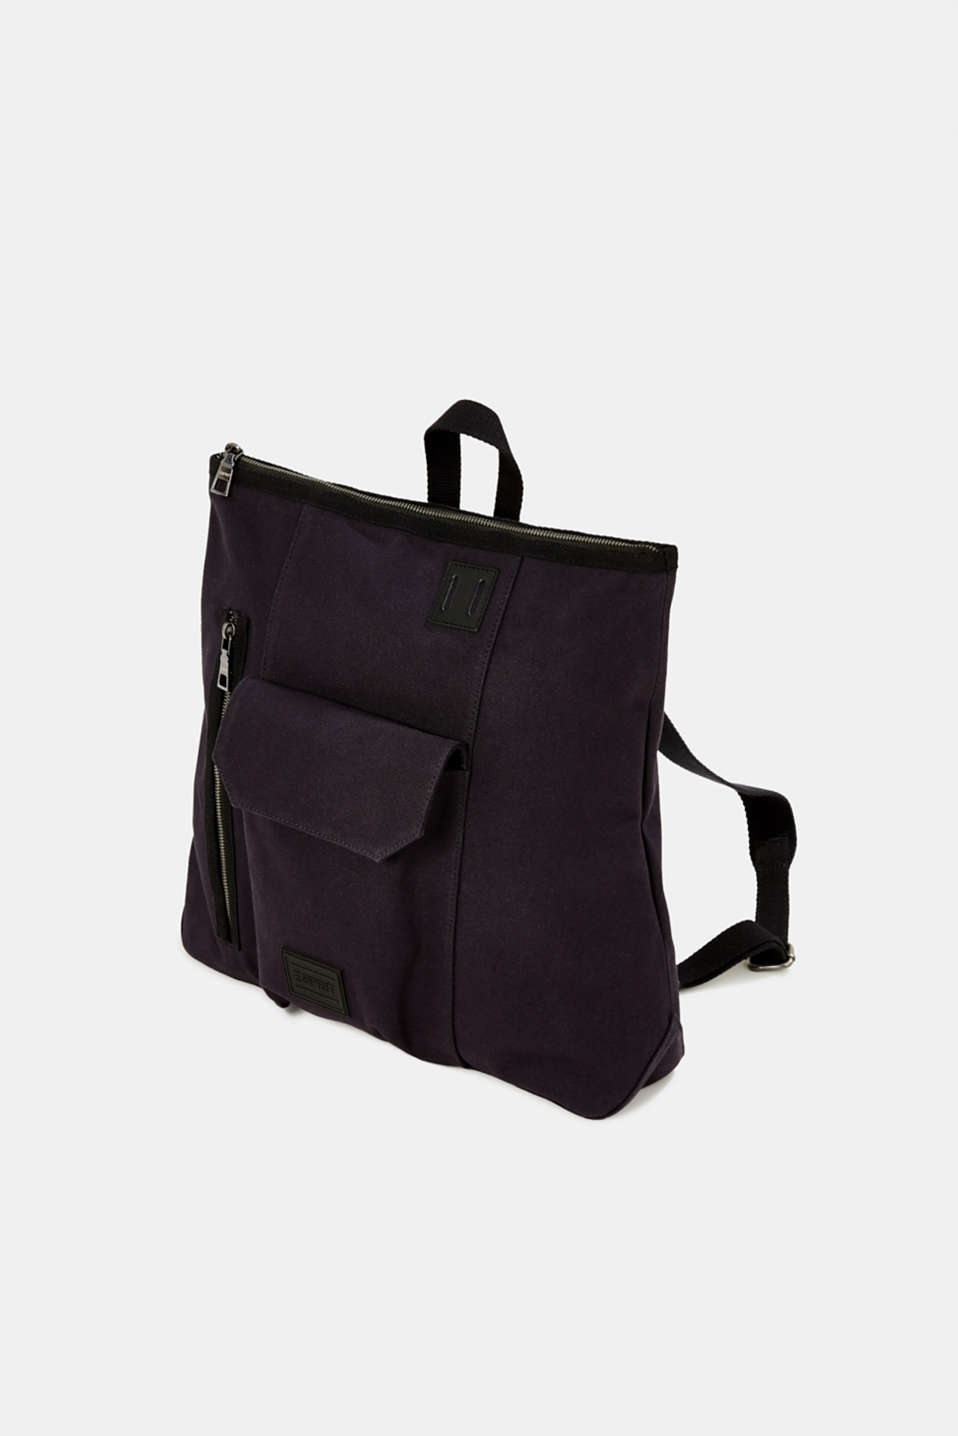 Rucksack with leather details, canvas, NAVY, detail image number 2